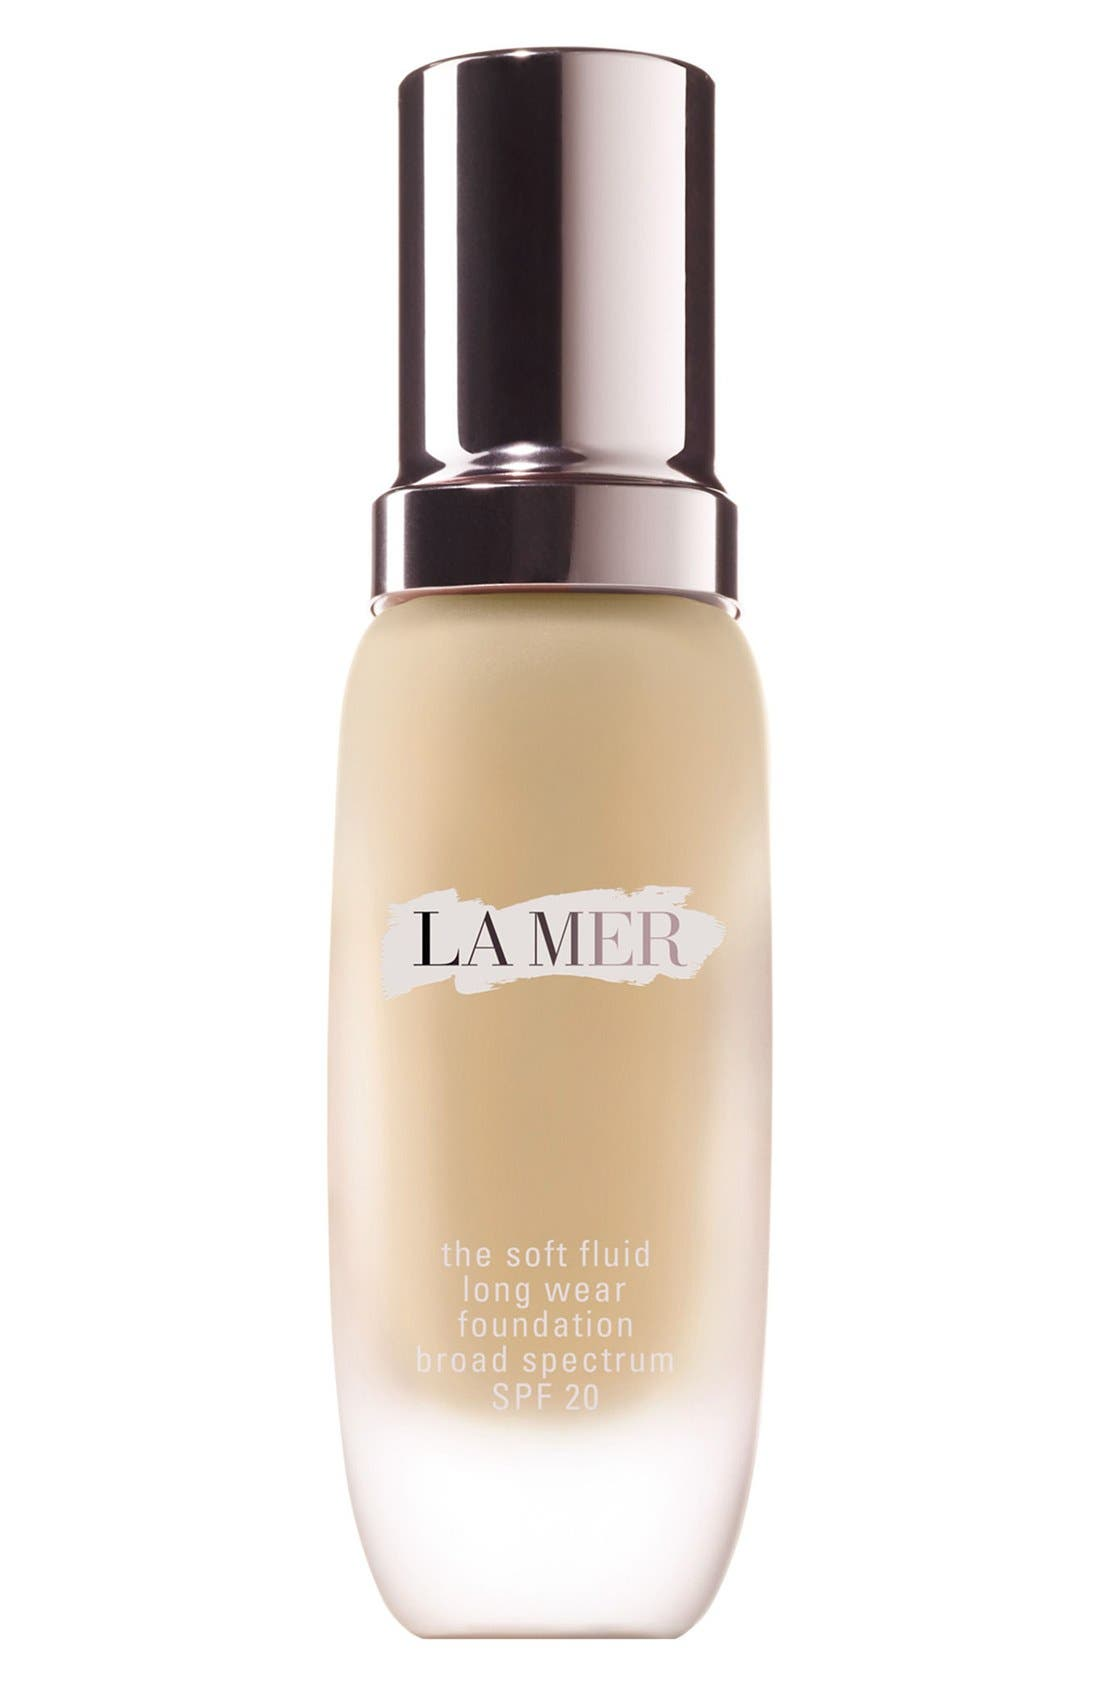 La Mer Soft Fluid Foundation SPF 20